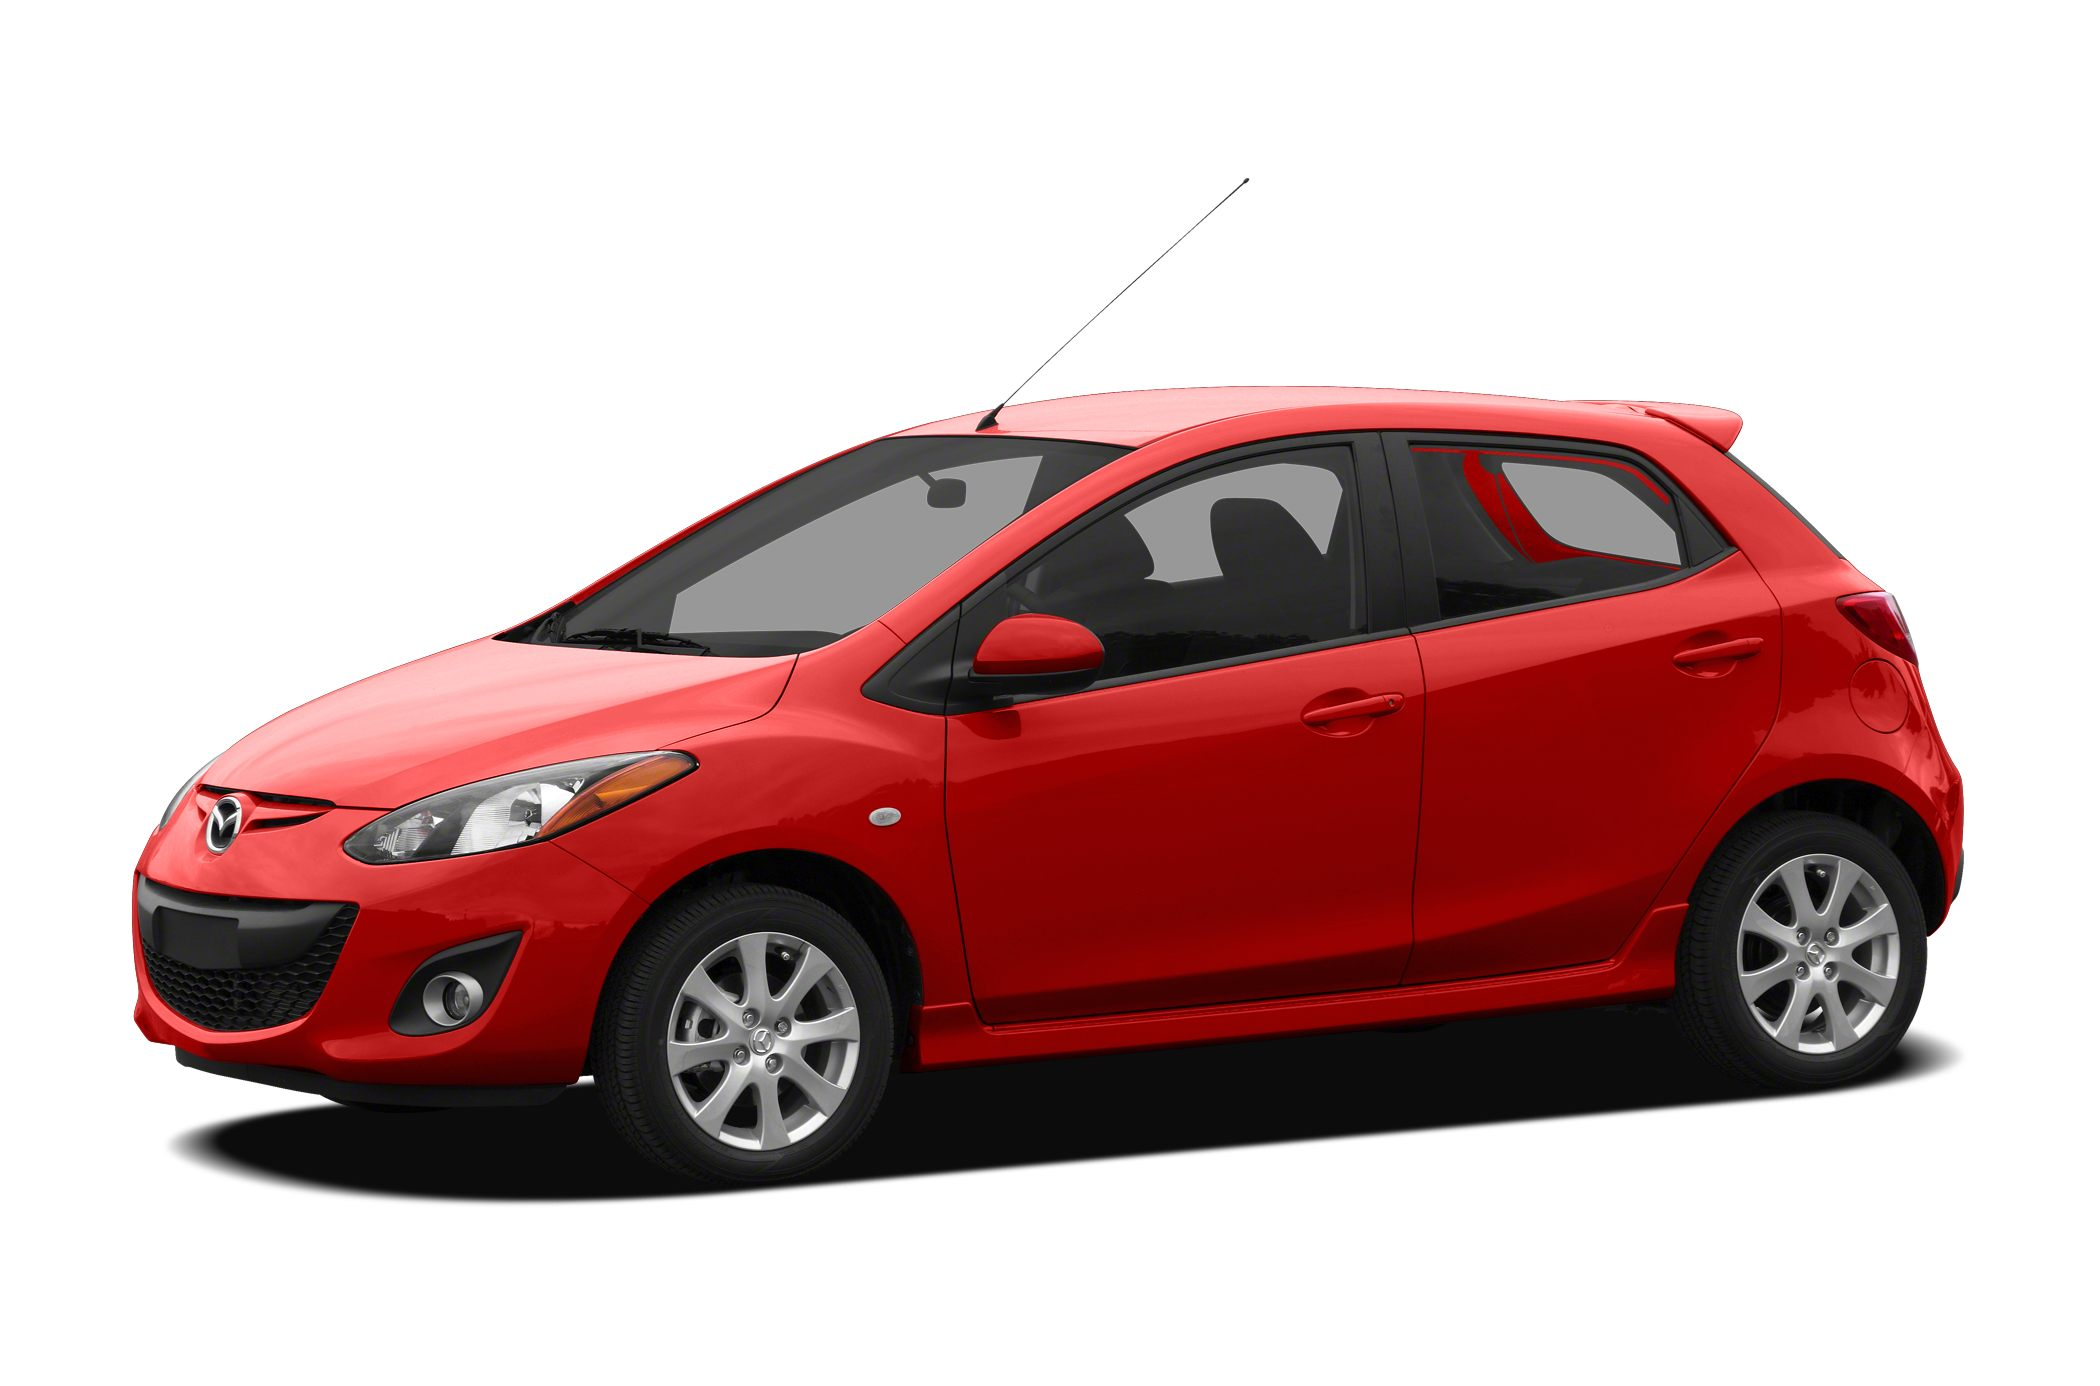 2011 Mazda Mazda2 Touring Hatchback for sale in Pittsburgh for $7,900 with 83,096 miles